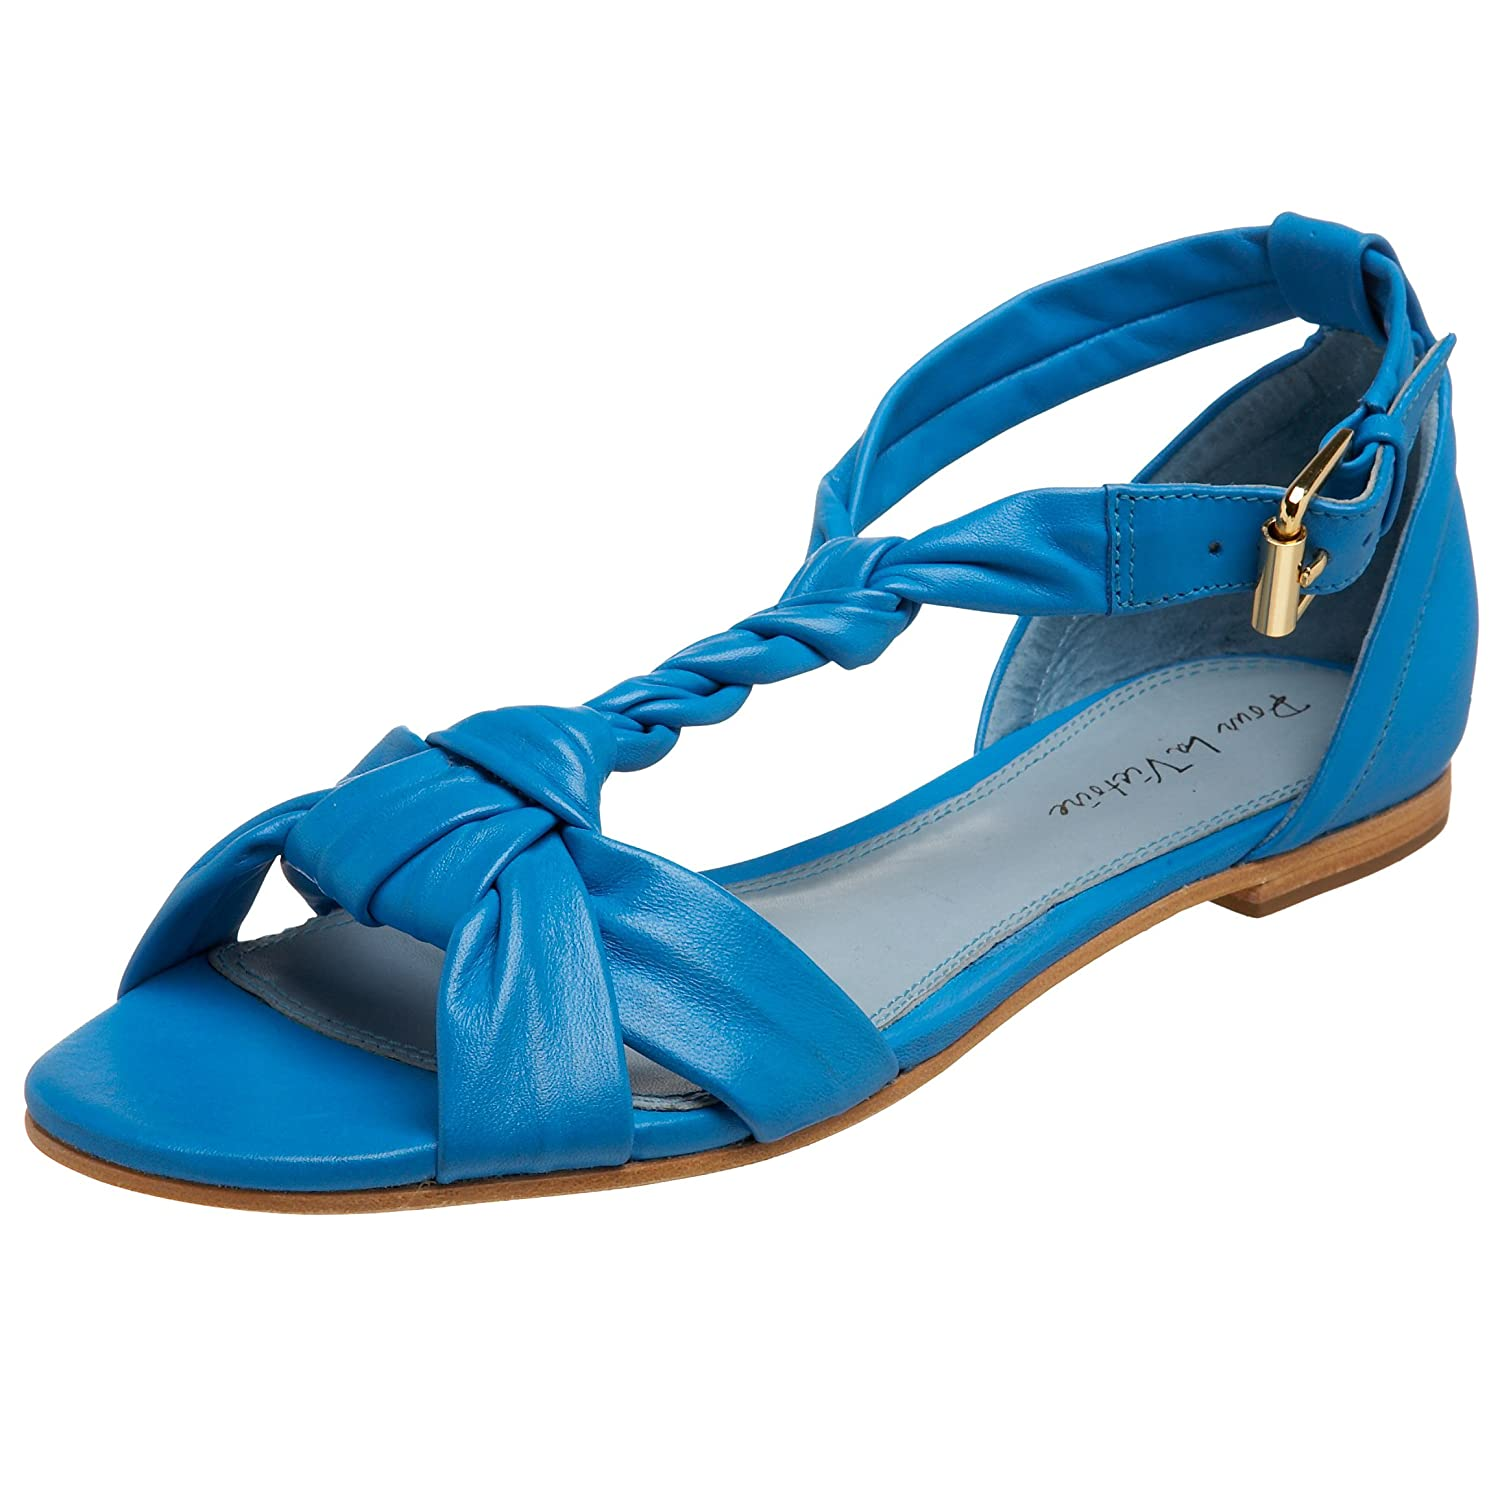 Pour La Victoire Women s Bijan Flat Sandal Free Overnight Shipping Return Shipping Endless com from endless.com